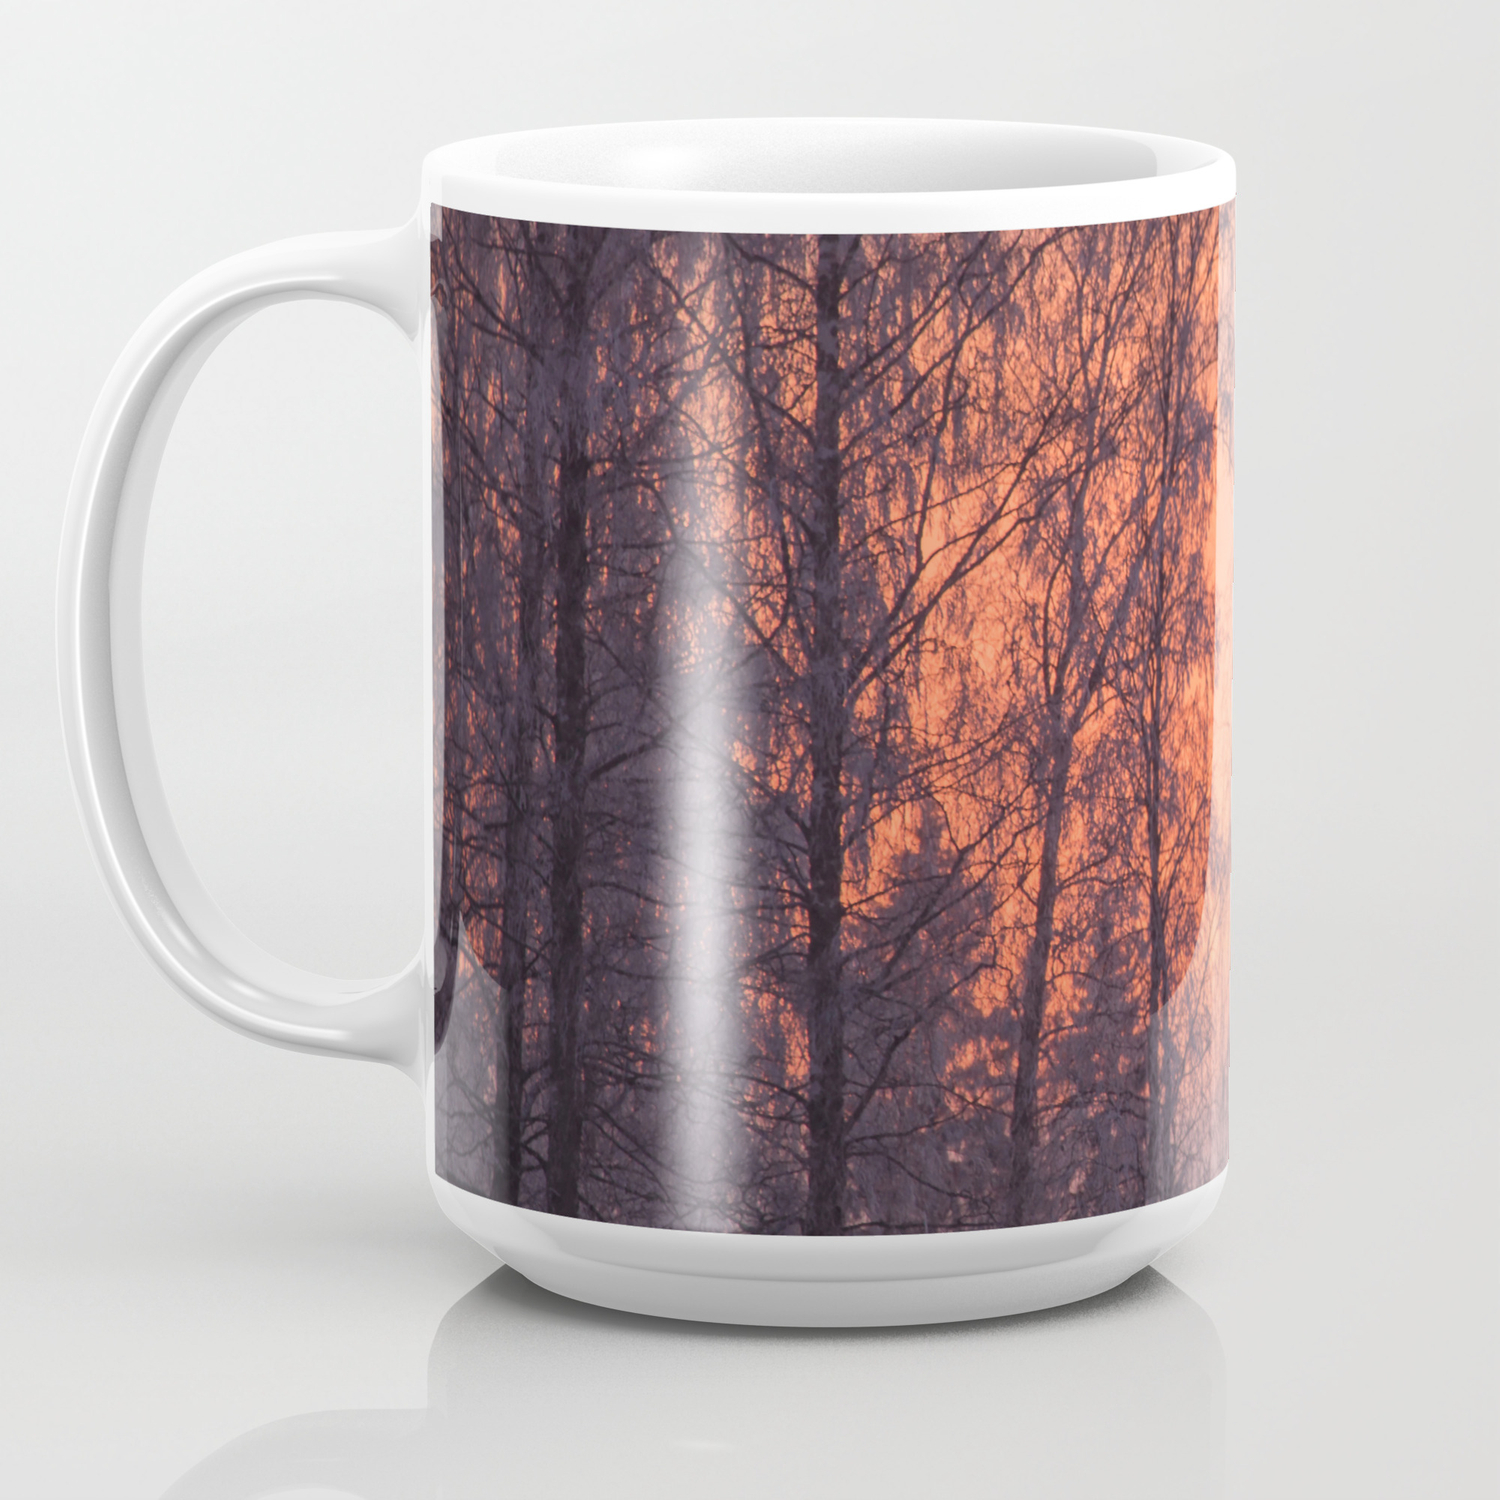 Winter Scene Frosty Trees Against The Sunset Decor Society6 Homedecor Coffee Mug